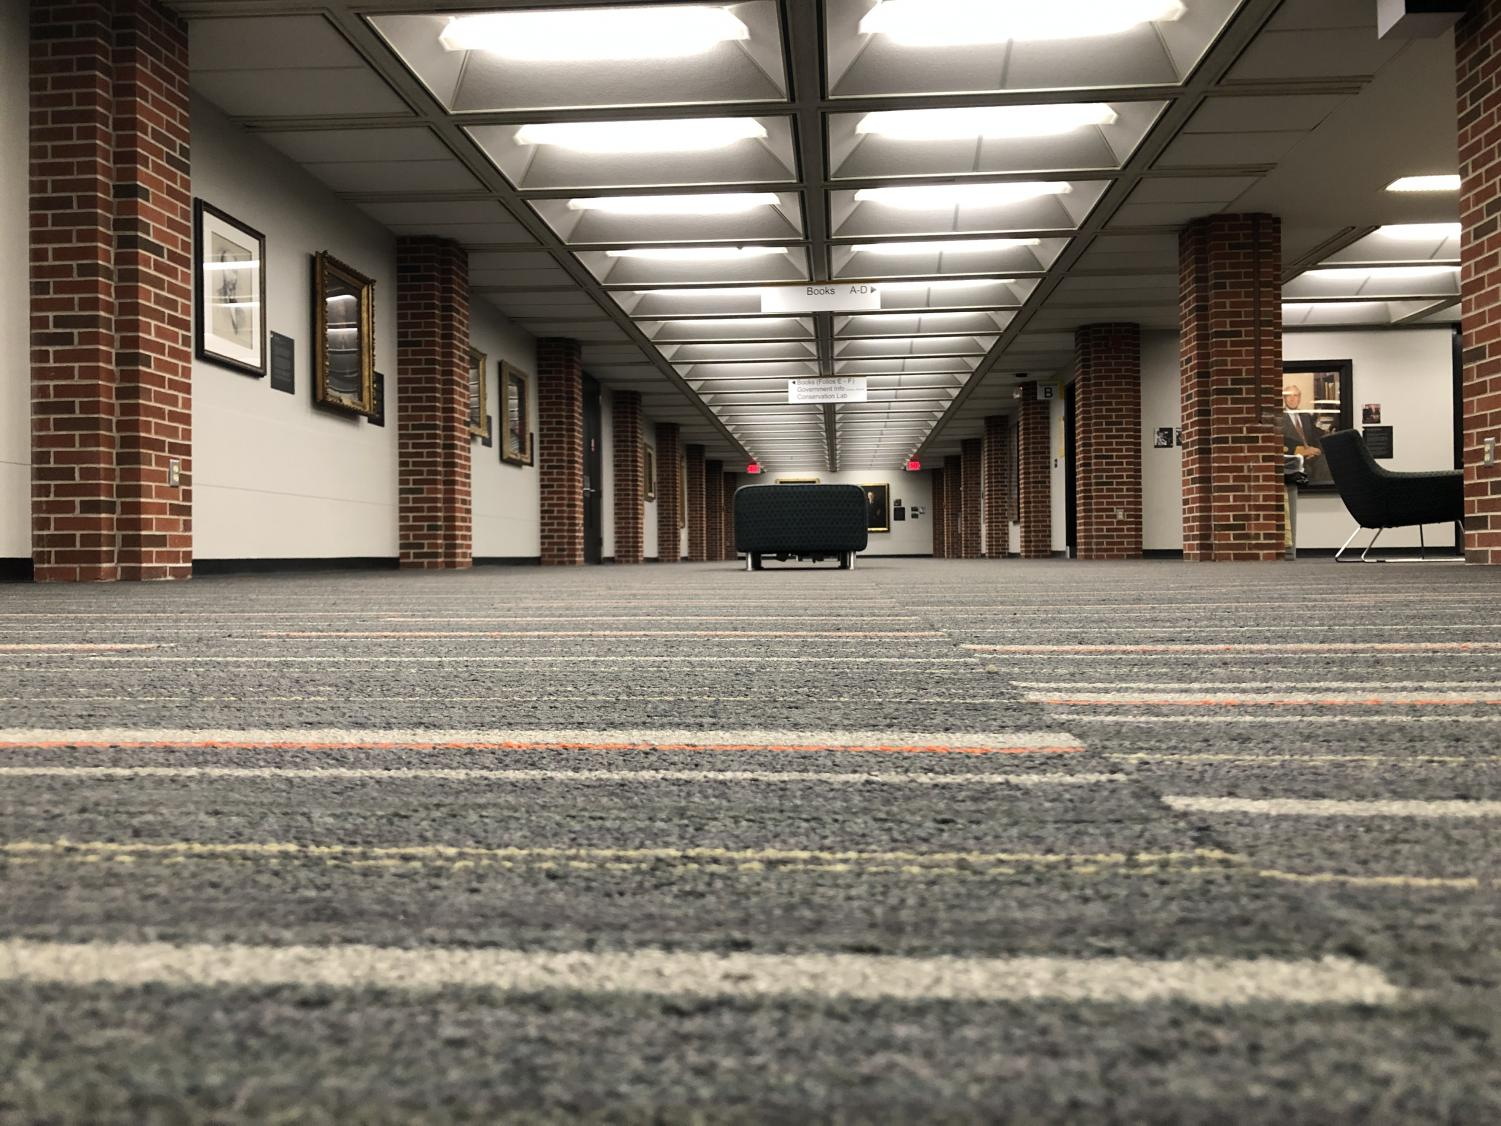 On+a+saturday+night%2C+surprisingly+the+university+library+is+barely+busy+and+some+floors+are+completely+empty.+From+the+worm%27s+eye+view+you+can+really+appreciate+the+leading+pillars+and+ceiling+tile+as+well+as+the+art+filling+the+walls.+%28worm%27s+eye+view%29%0A